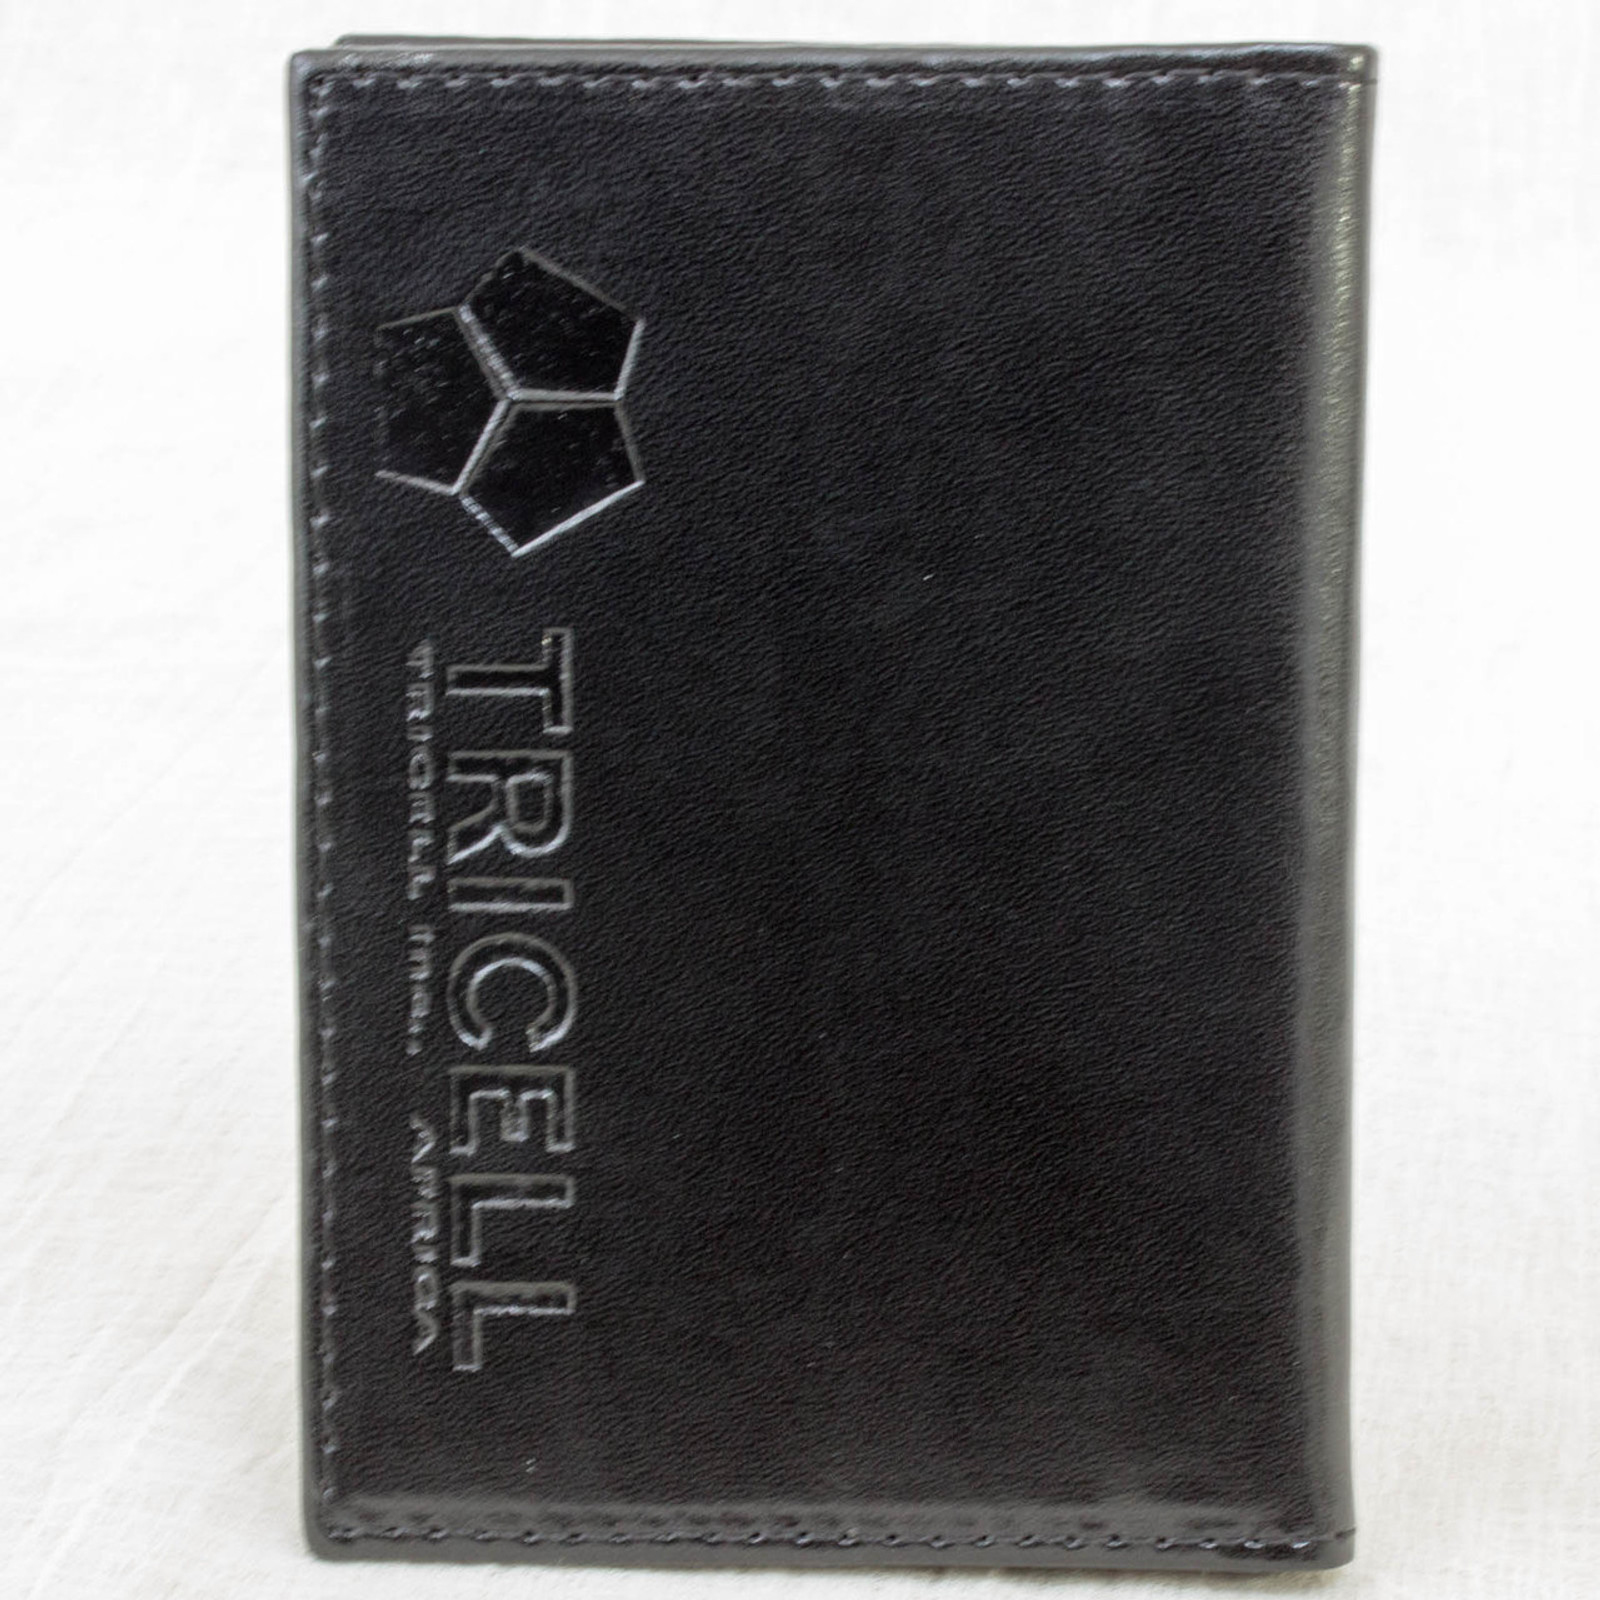 RESIDENT EVIL Biohazard TRICELL Logo Card Case  Capcom JAPAN GAME